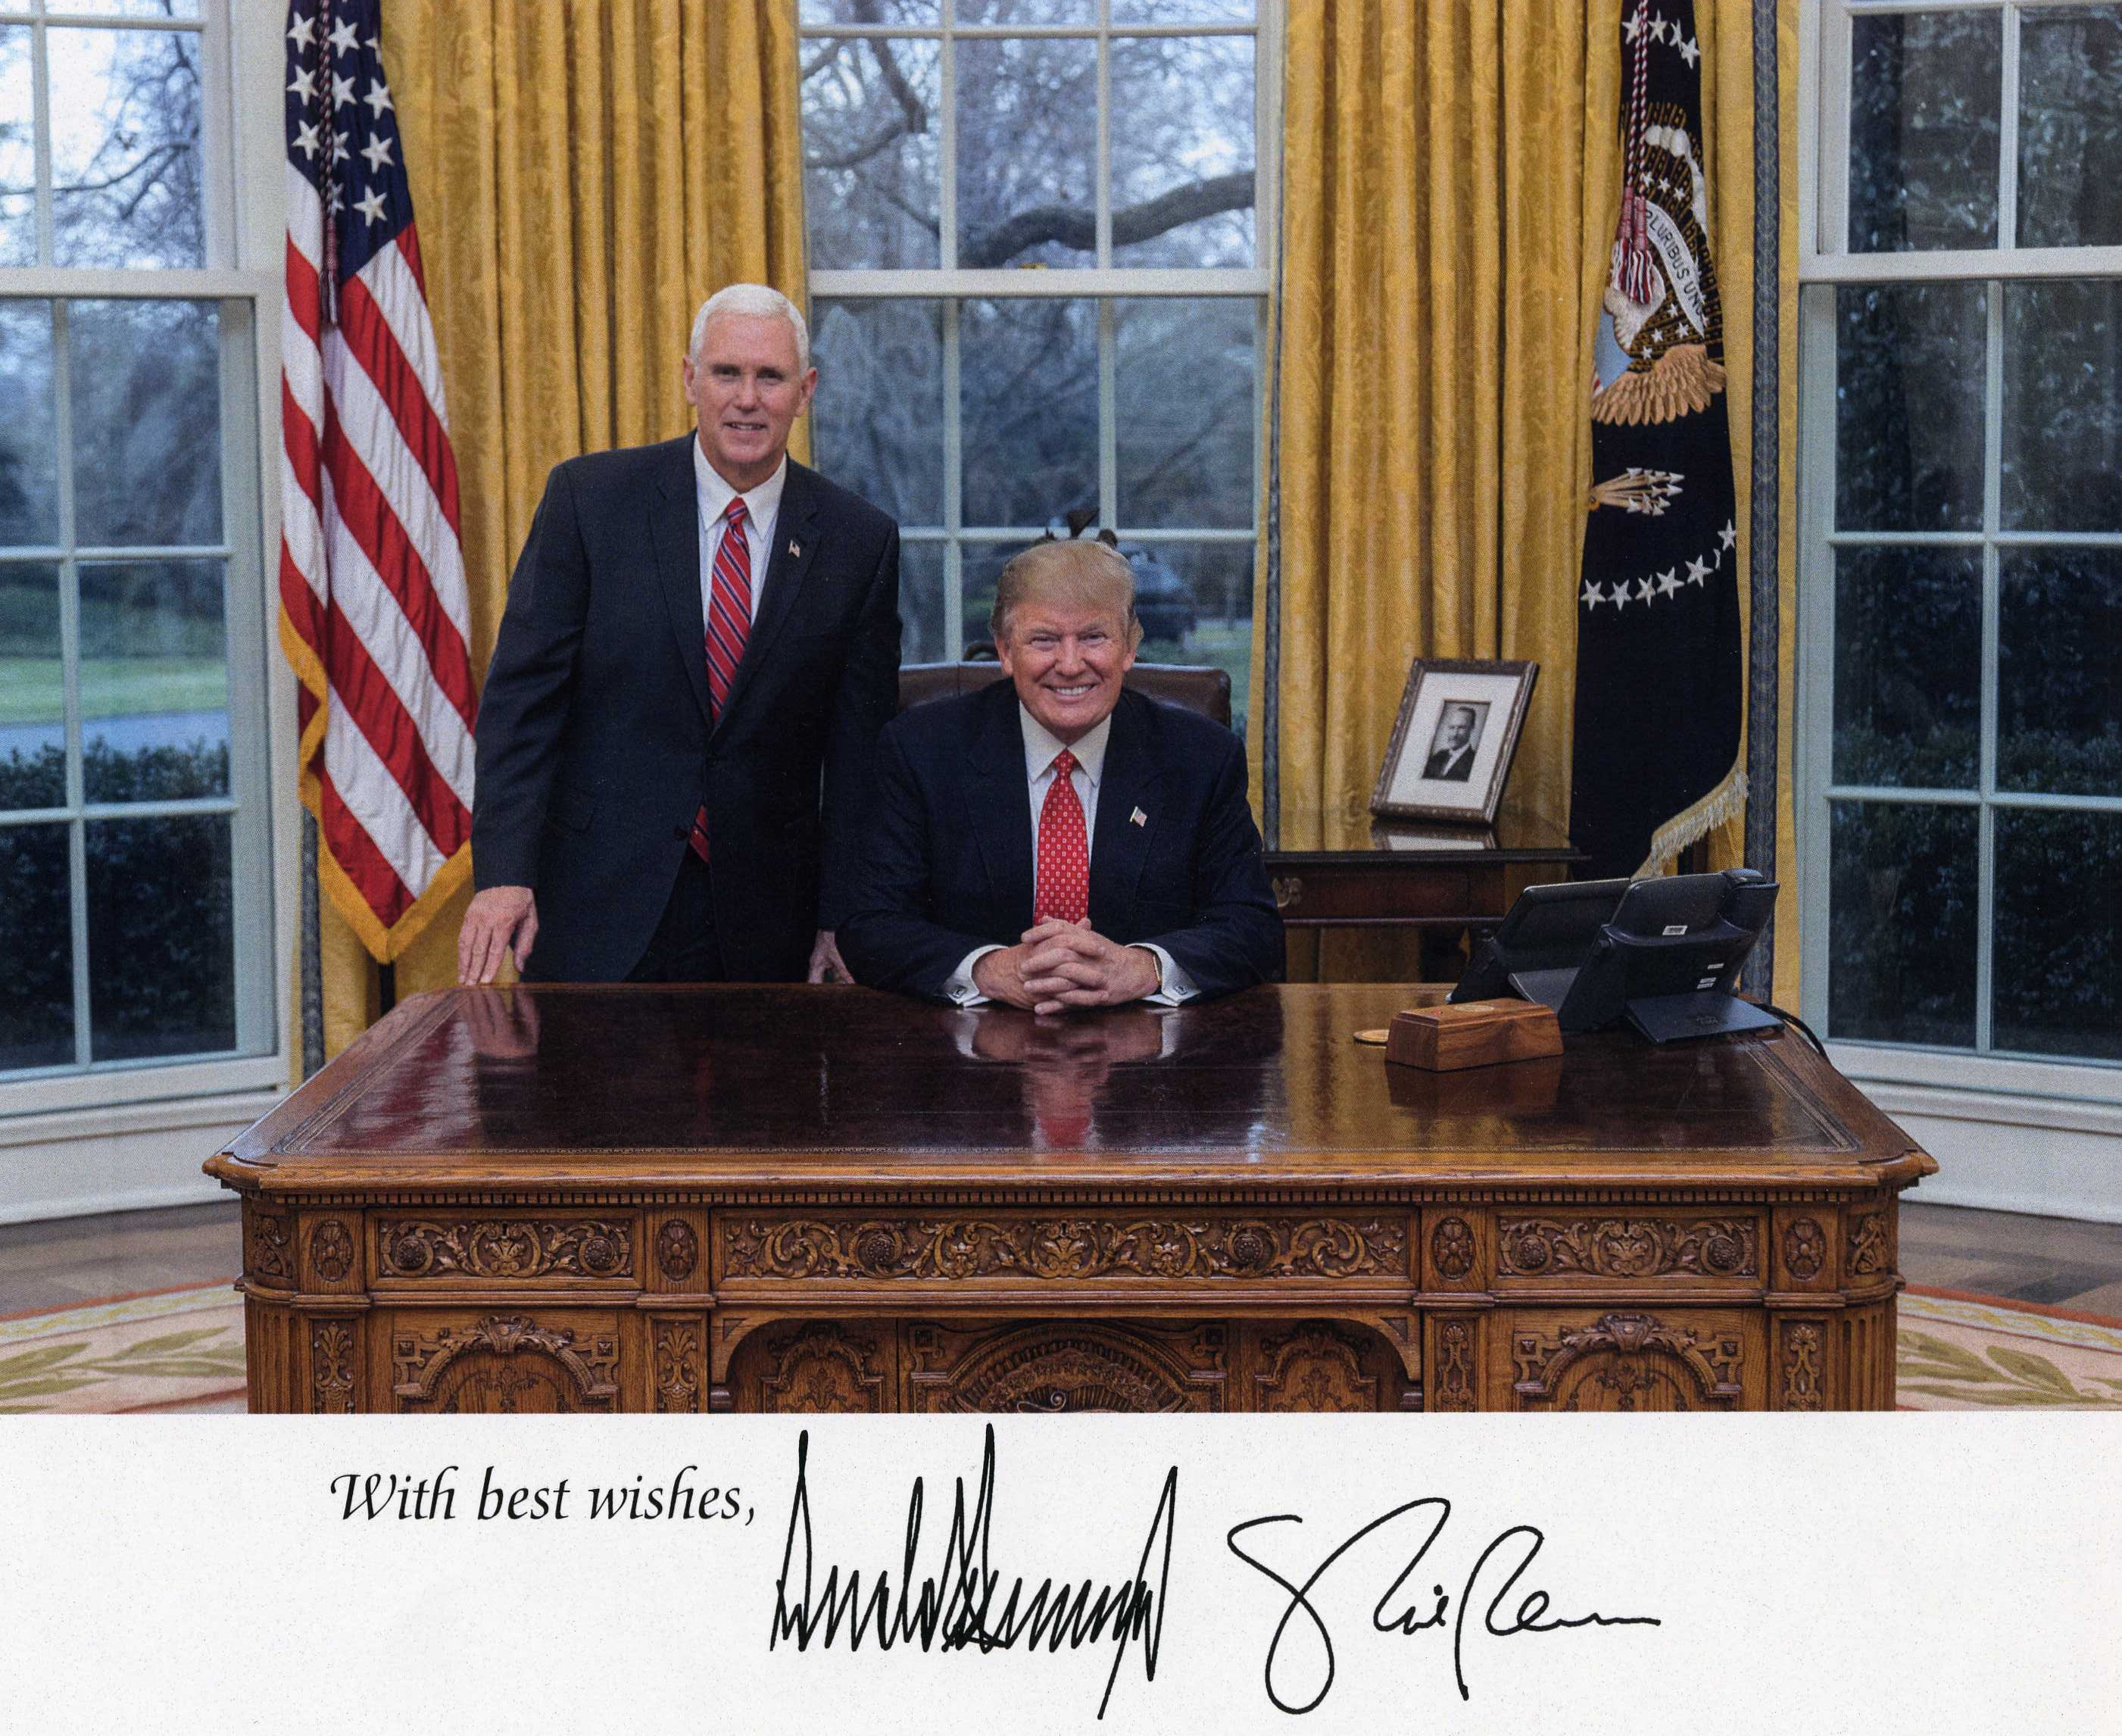 Signed Photo of President Donald J. Trump and Vice President Mike Pence